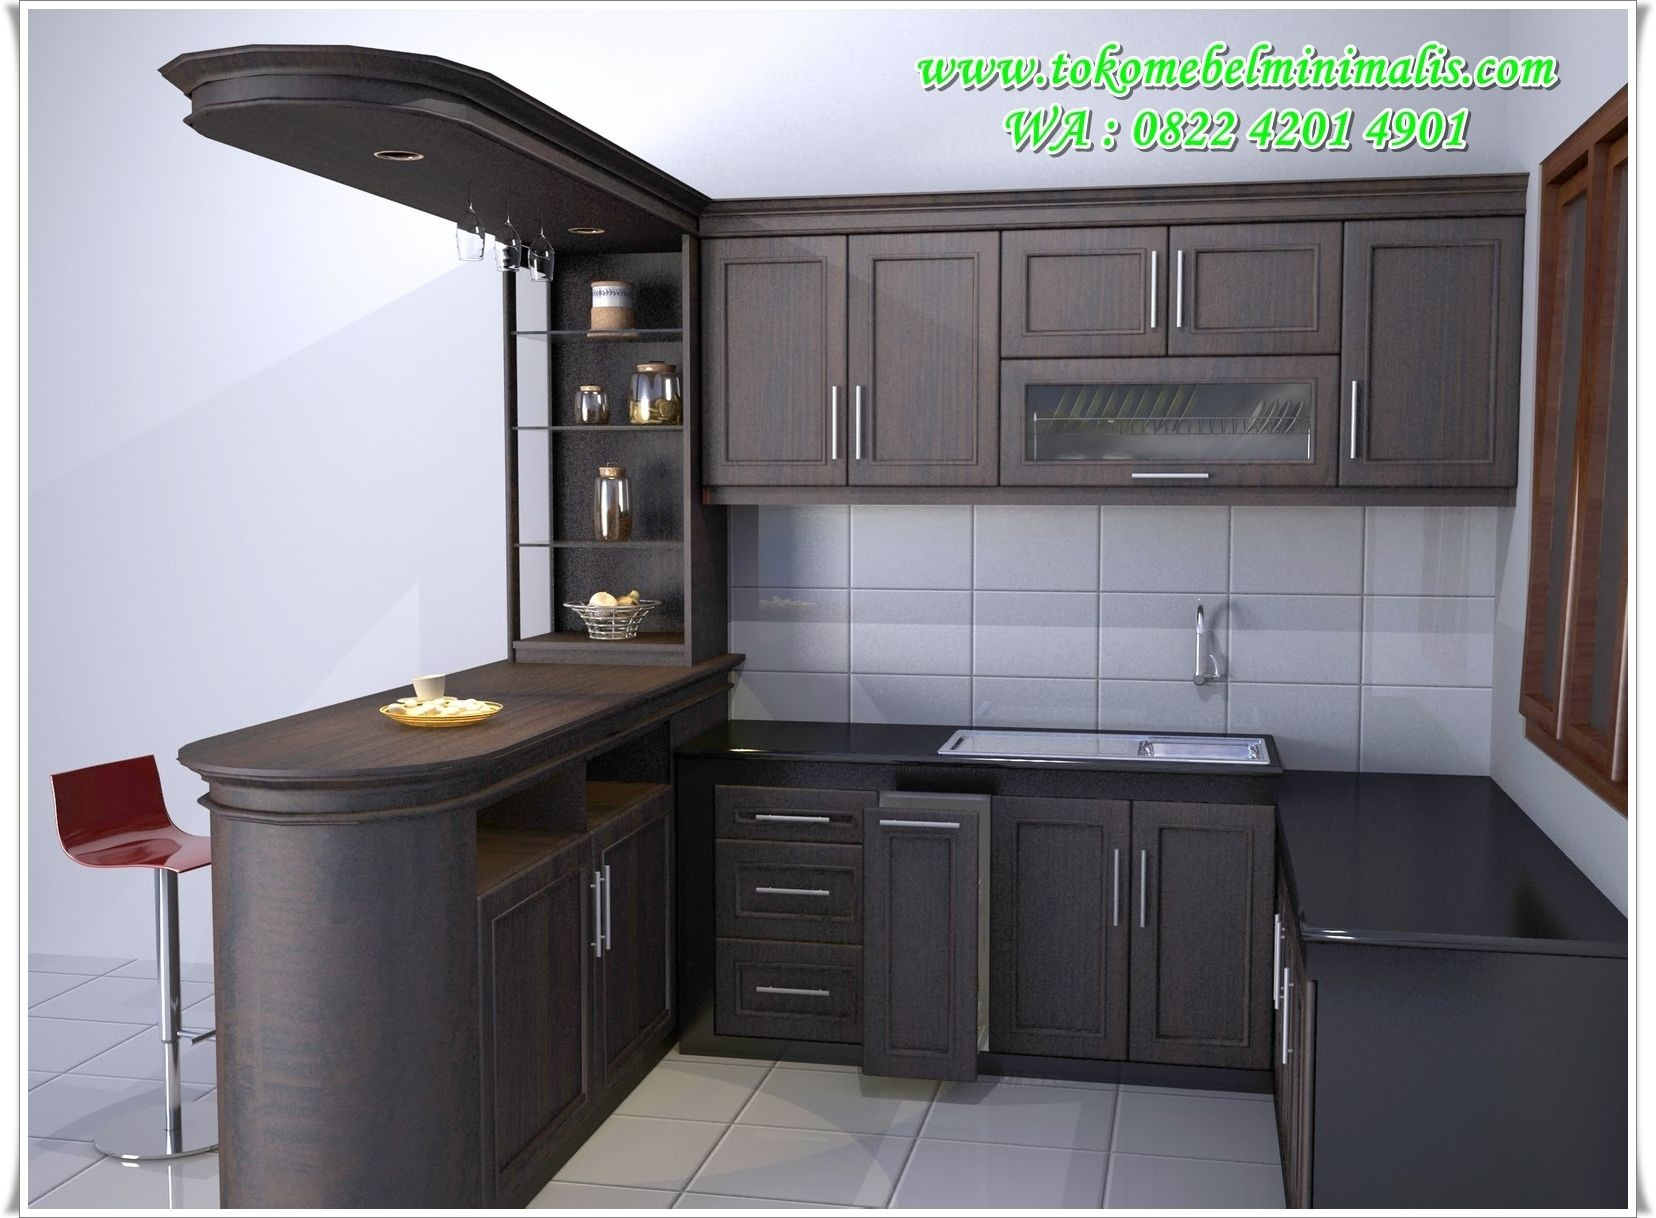 Fabulous Modern Kitchen Sets on Simplicity Efficiency and Elegance Home of Pondo Home Design